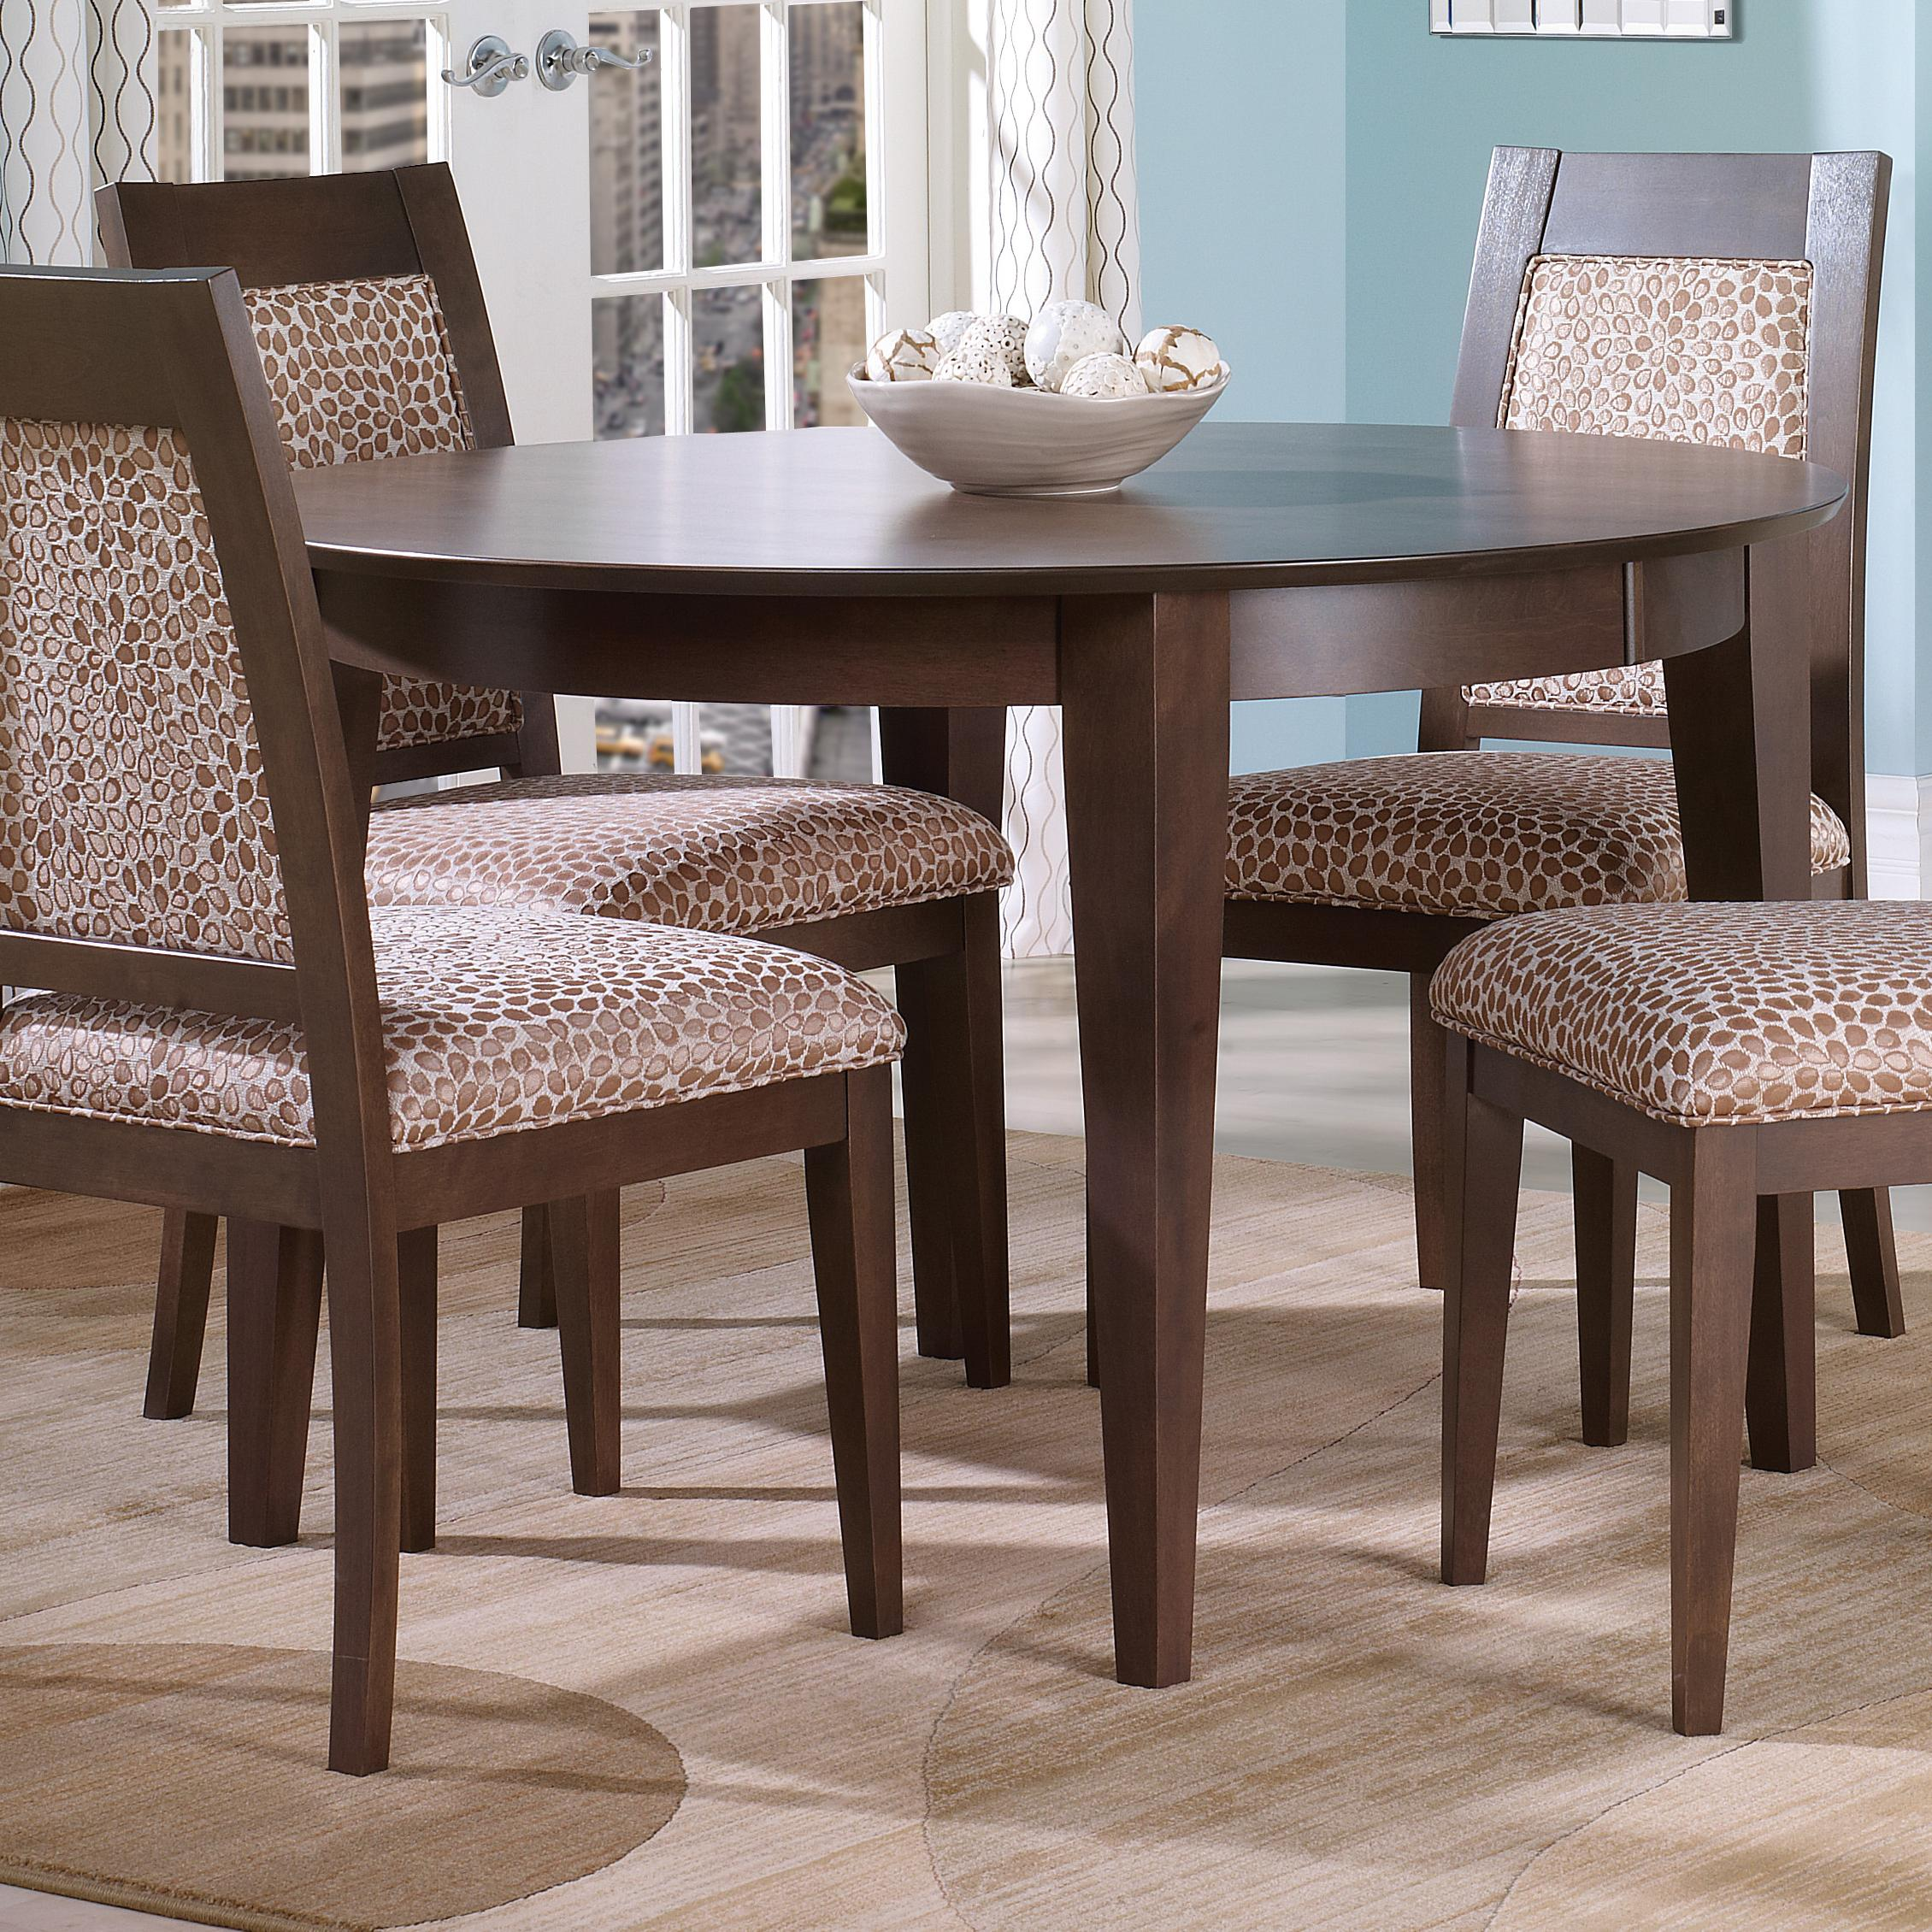 <b>Customizable</b> Round Table with Legs